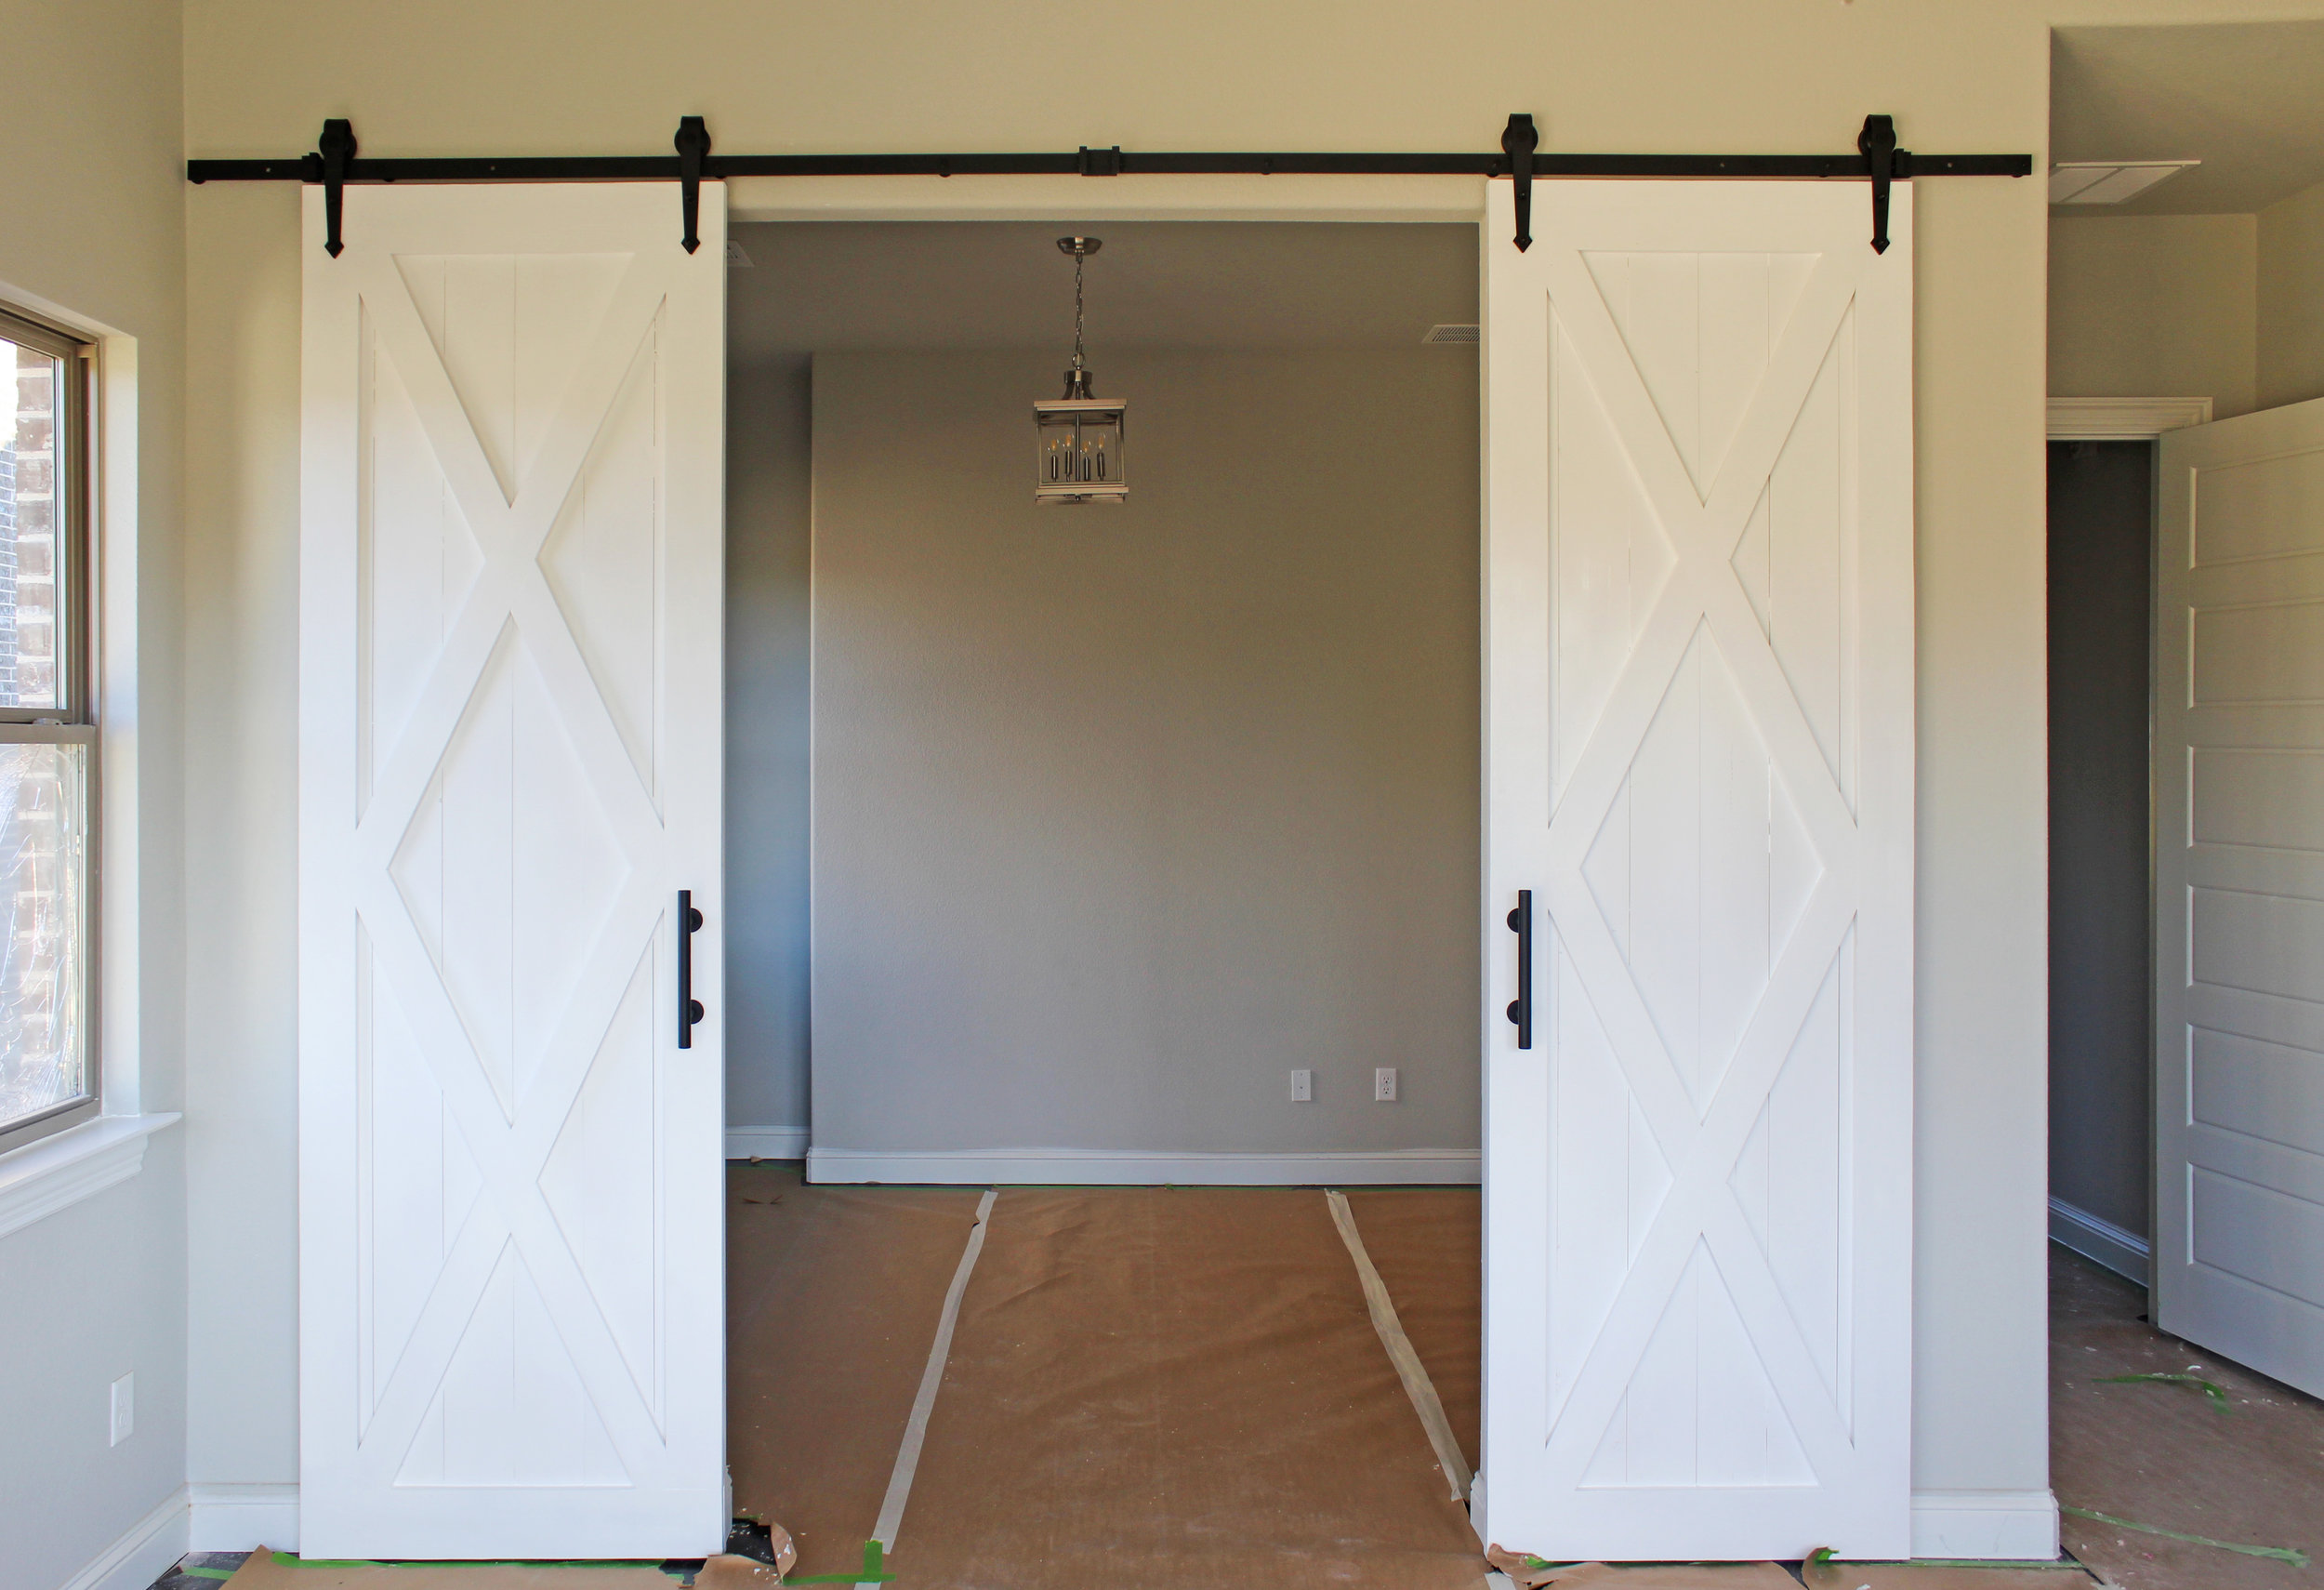 2020 Home Trends-Kitchen Barn Doors 2